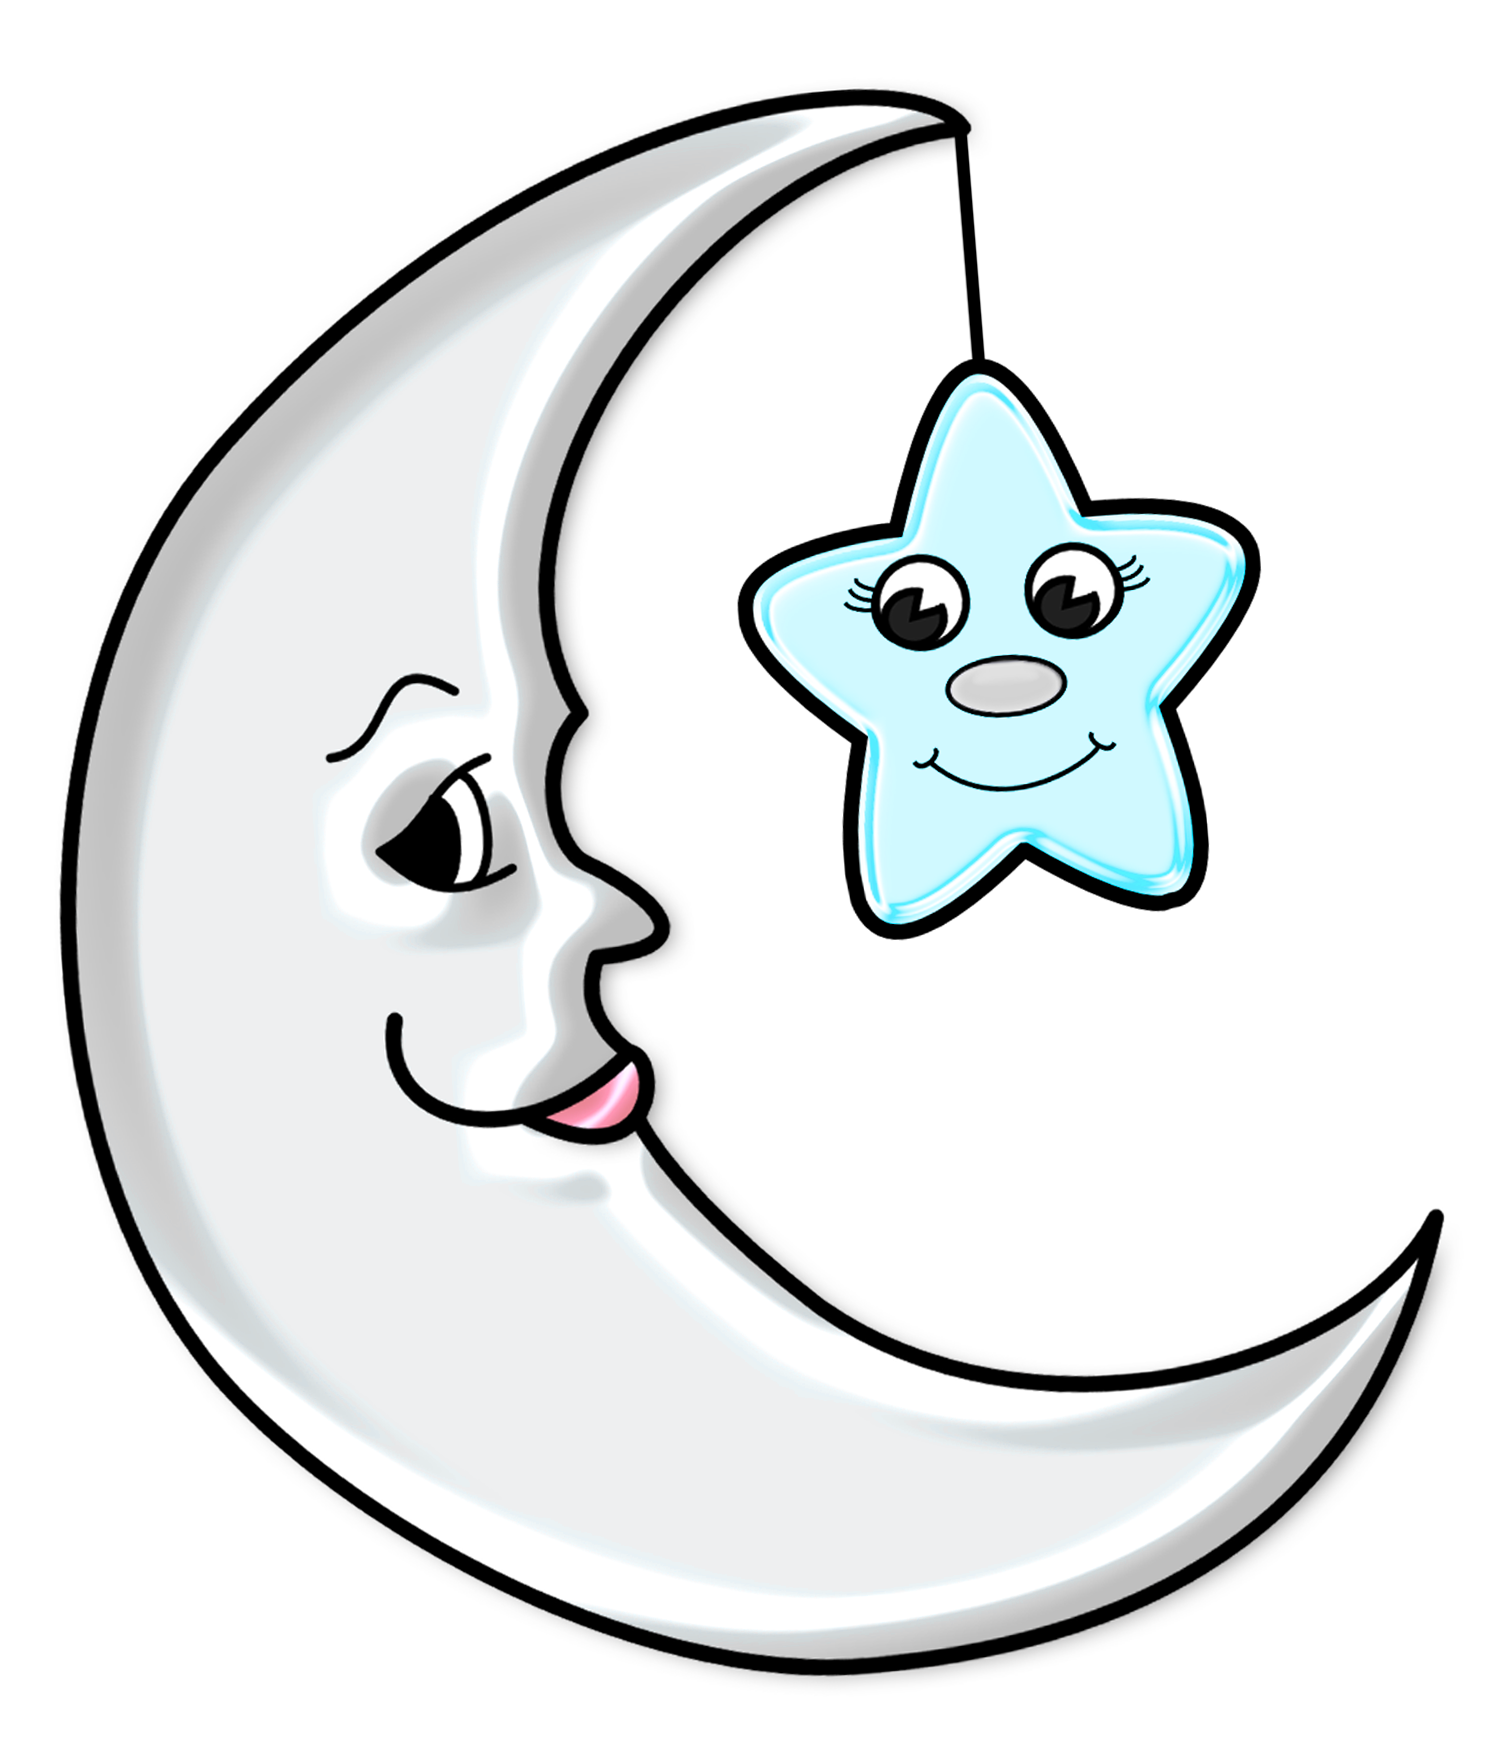 Moon with transparent png. Star clip art cute